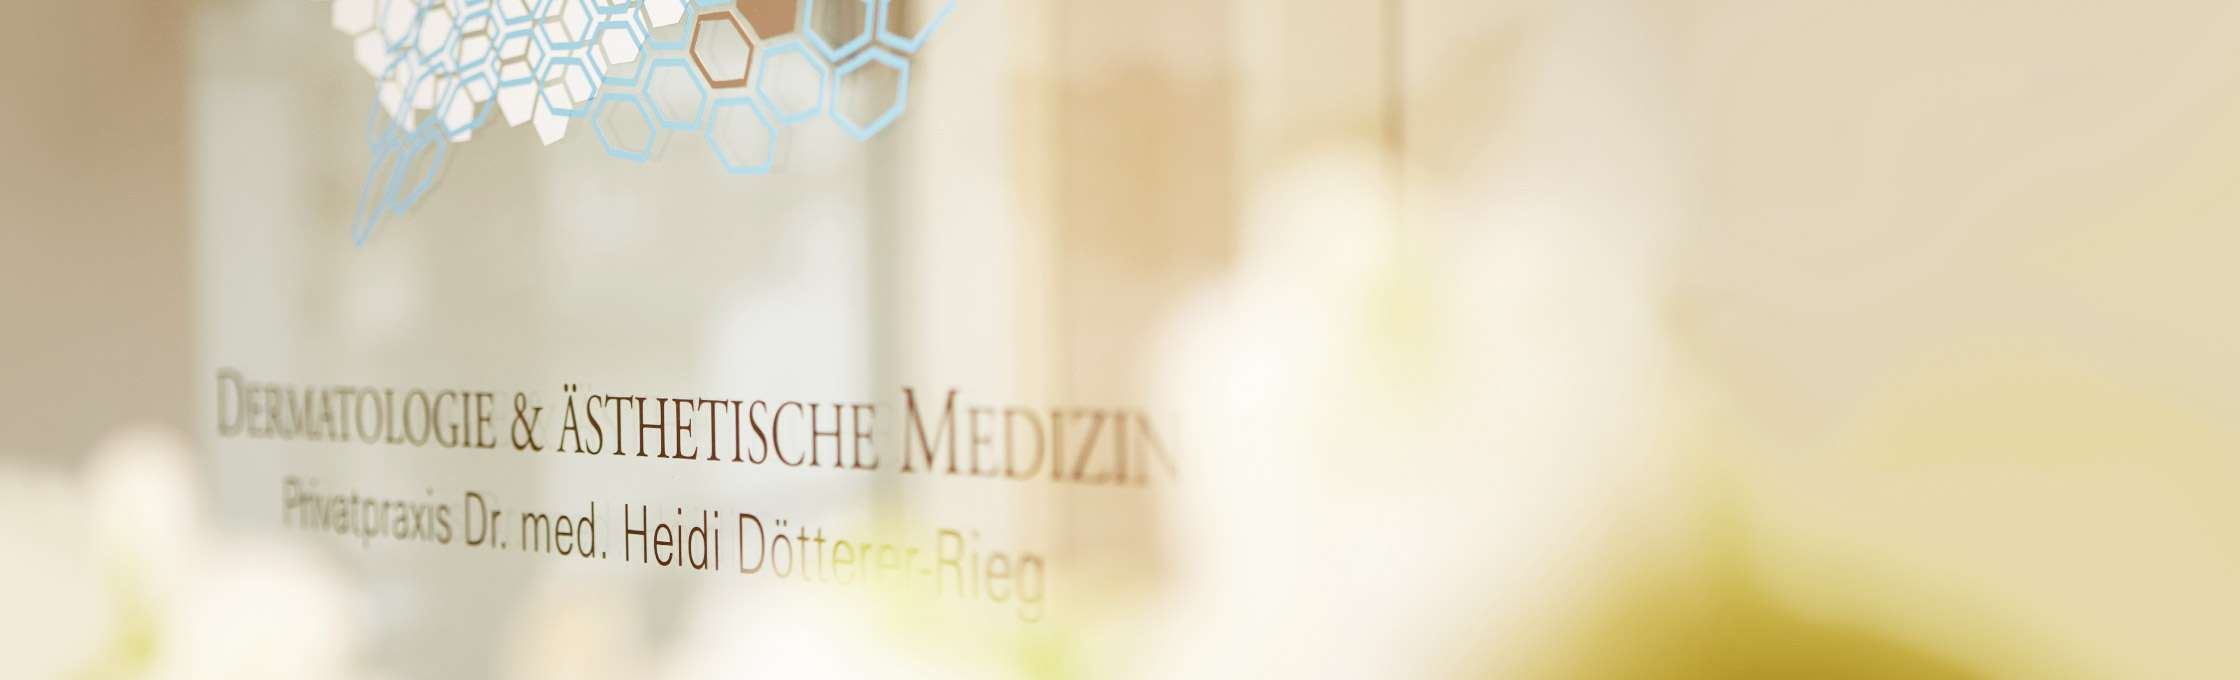 The company logo of the private dermatologist's office Dr. med. Heidi Dötterer-Rieg in the Große Bockenheimer Straße 41, Frankfurt am Main. The four-color logo is glued to a transparent glass surface. In the foreground are white orchids.